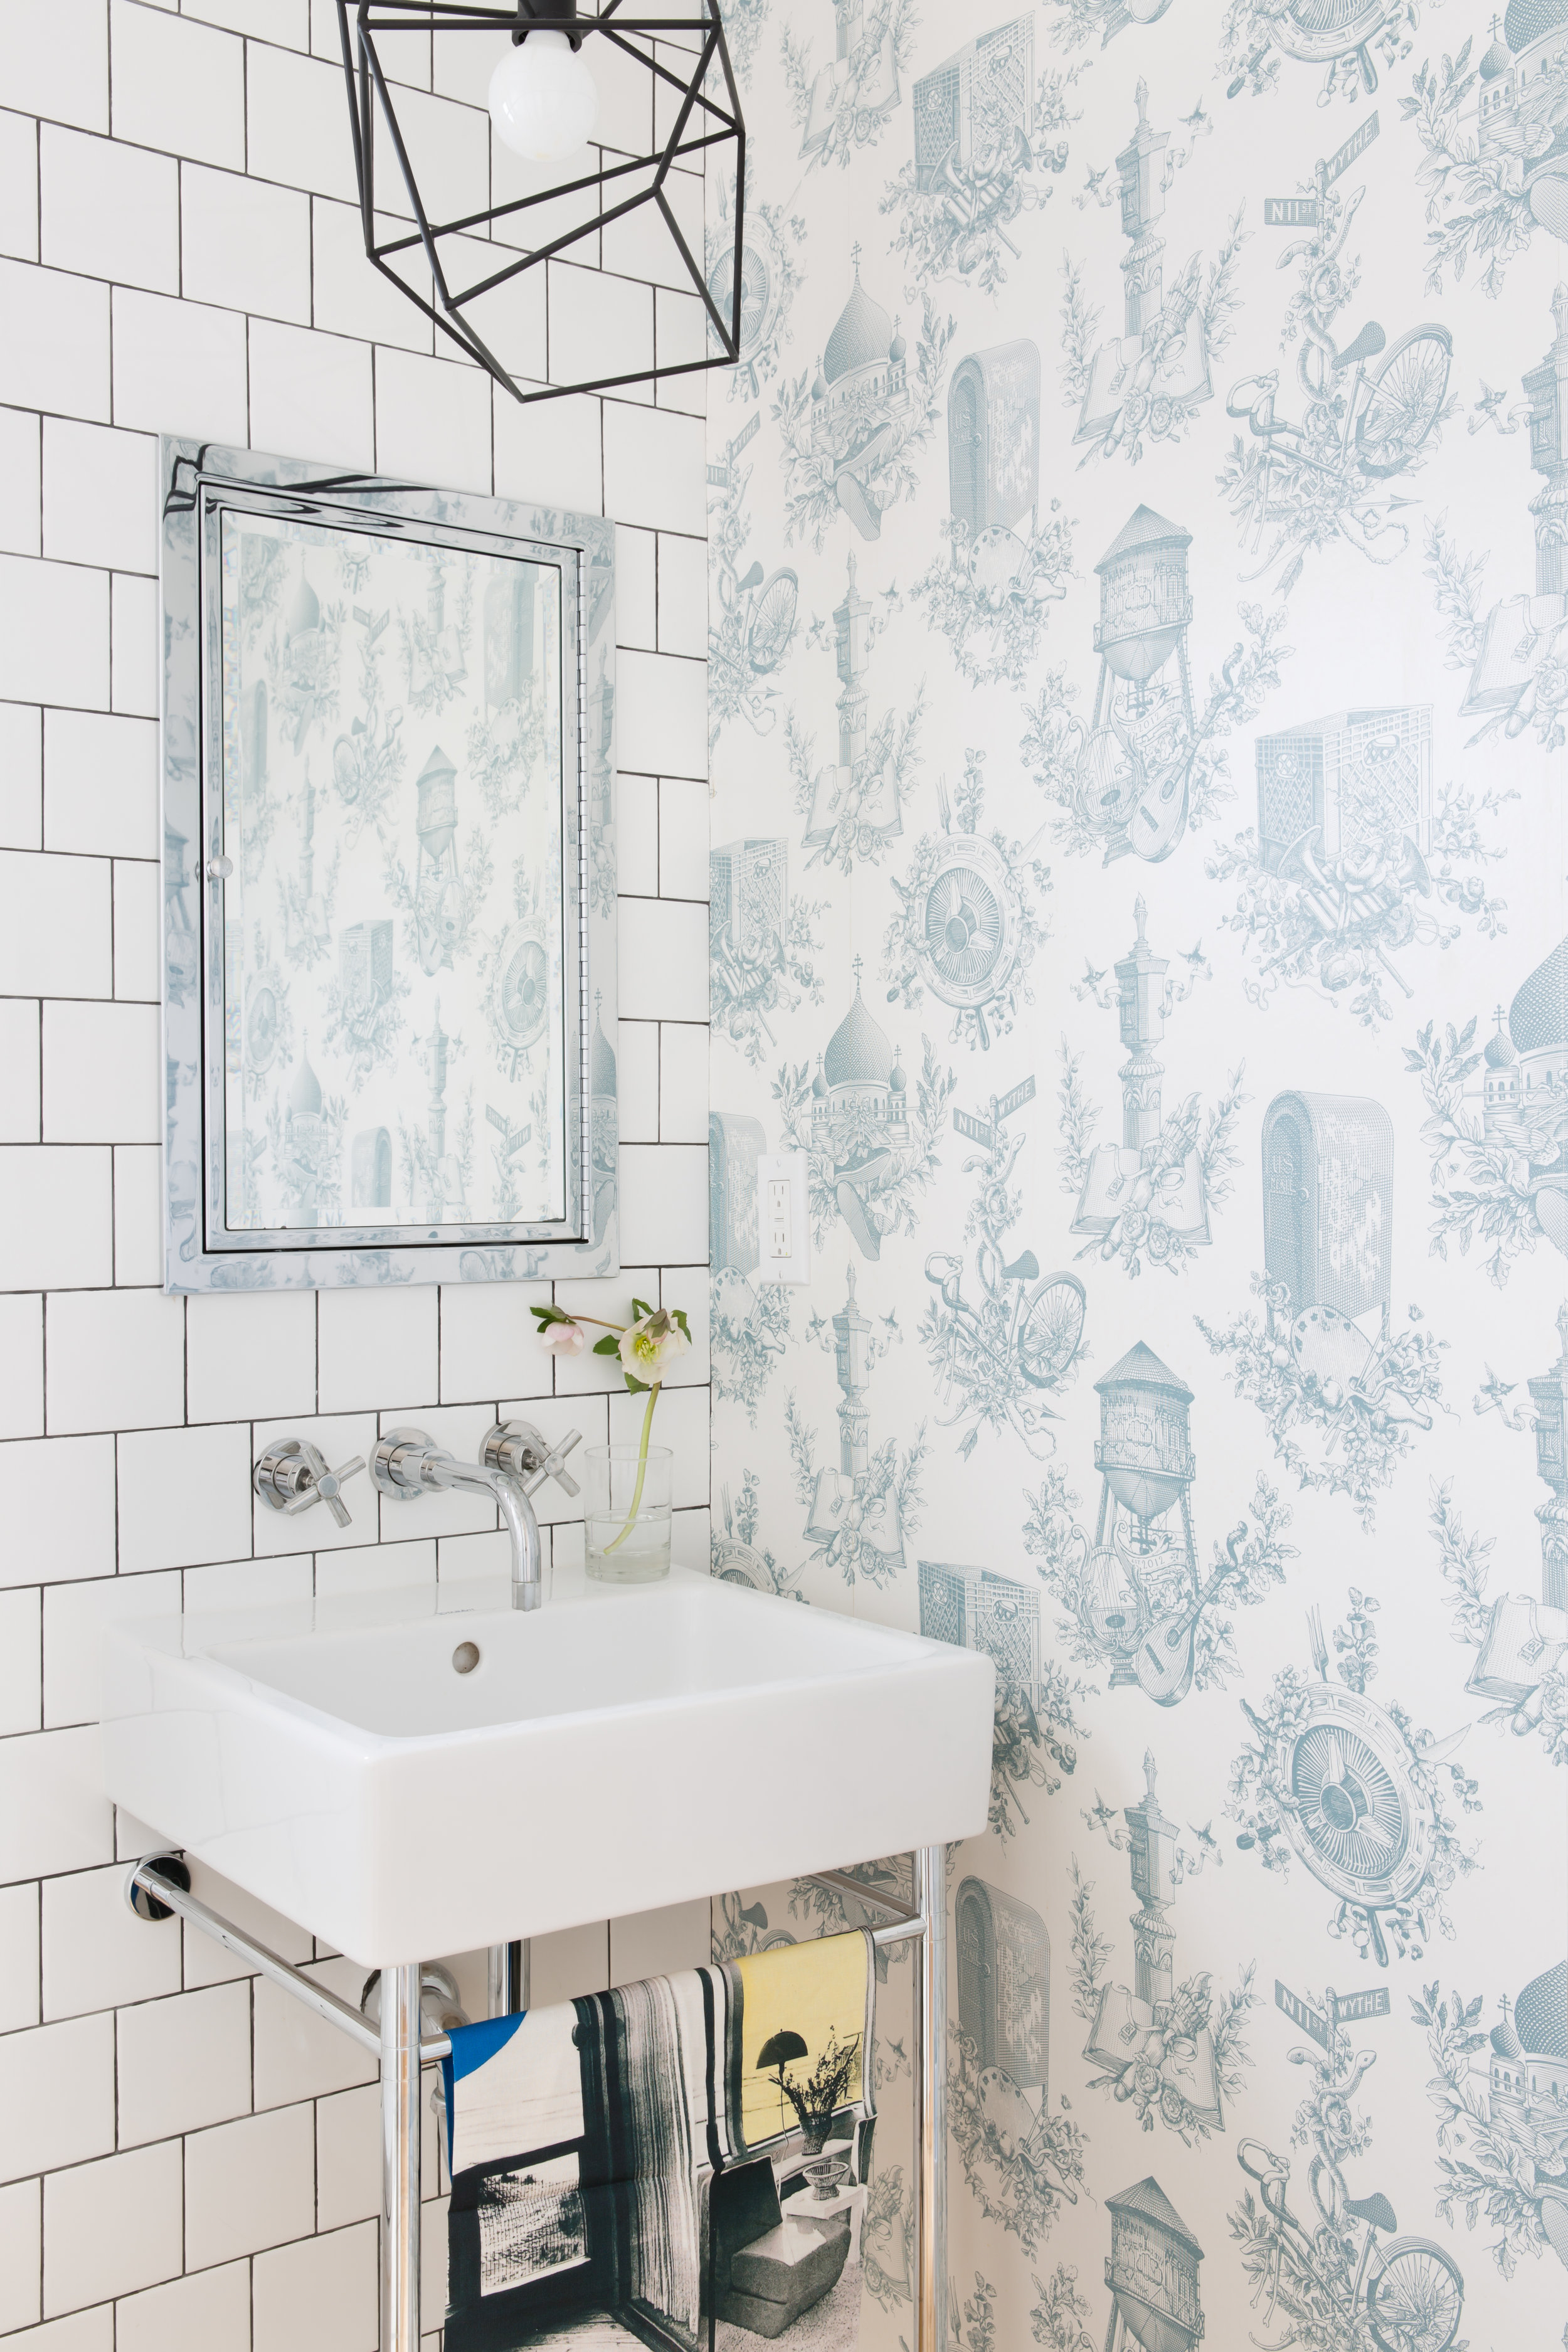 11 RBD Noe Valley Parisian Atelier - Powder Room.jpg